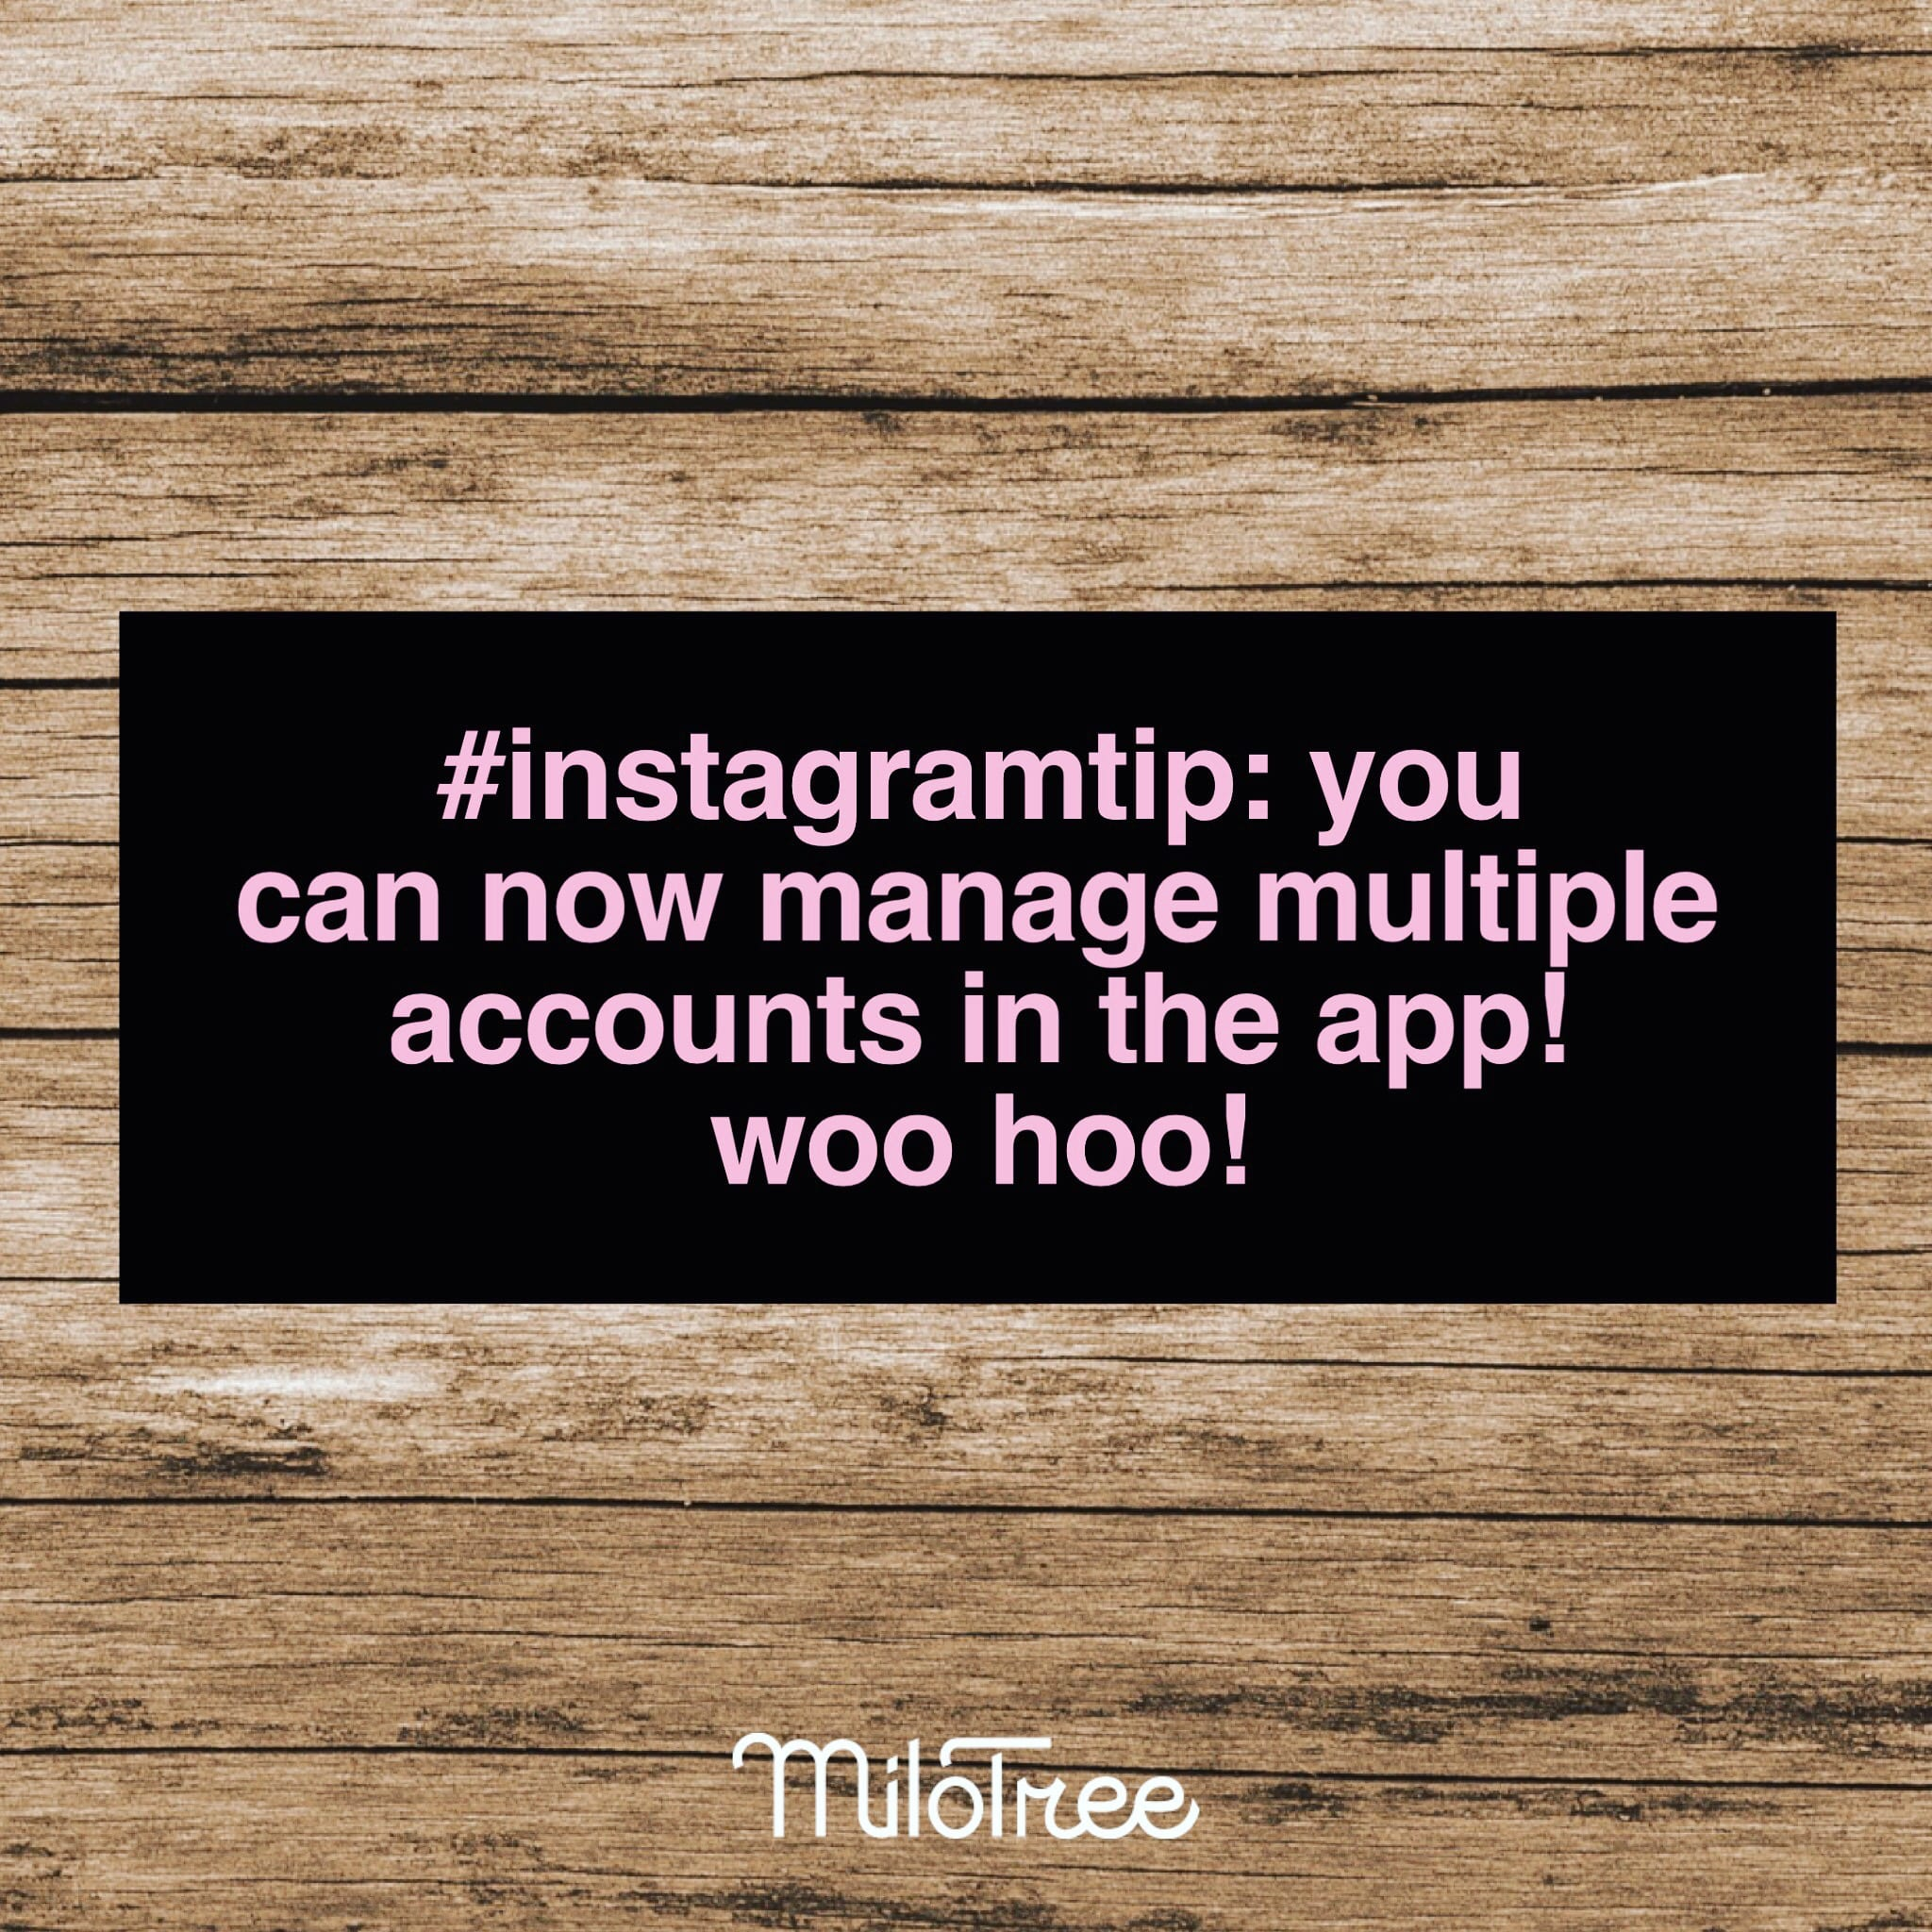 Switch Between Multiple Instagram Accounts In The App